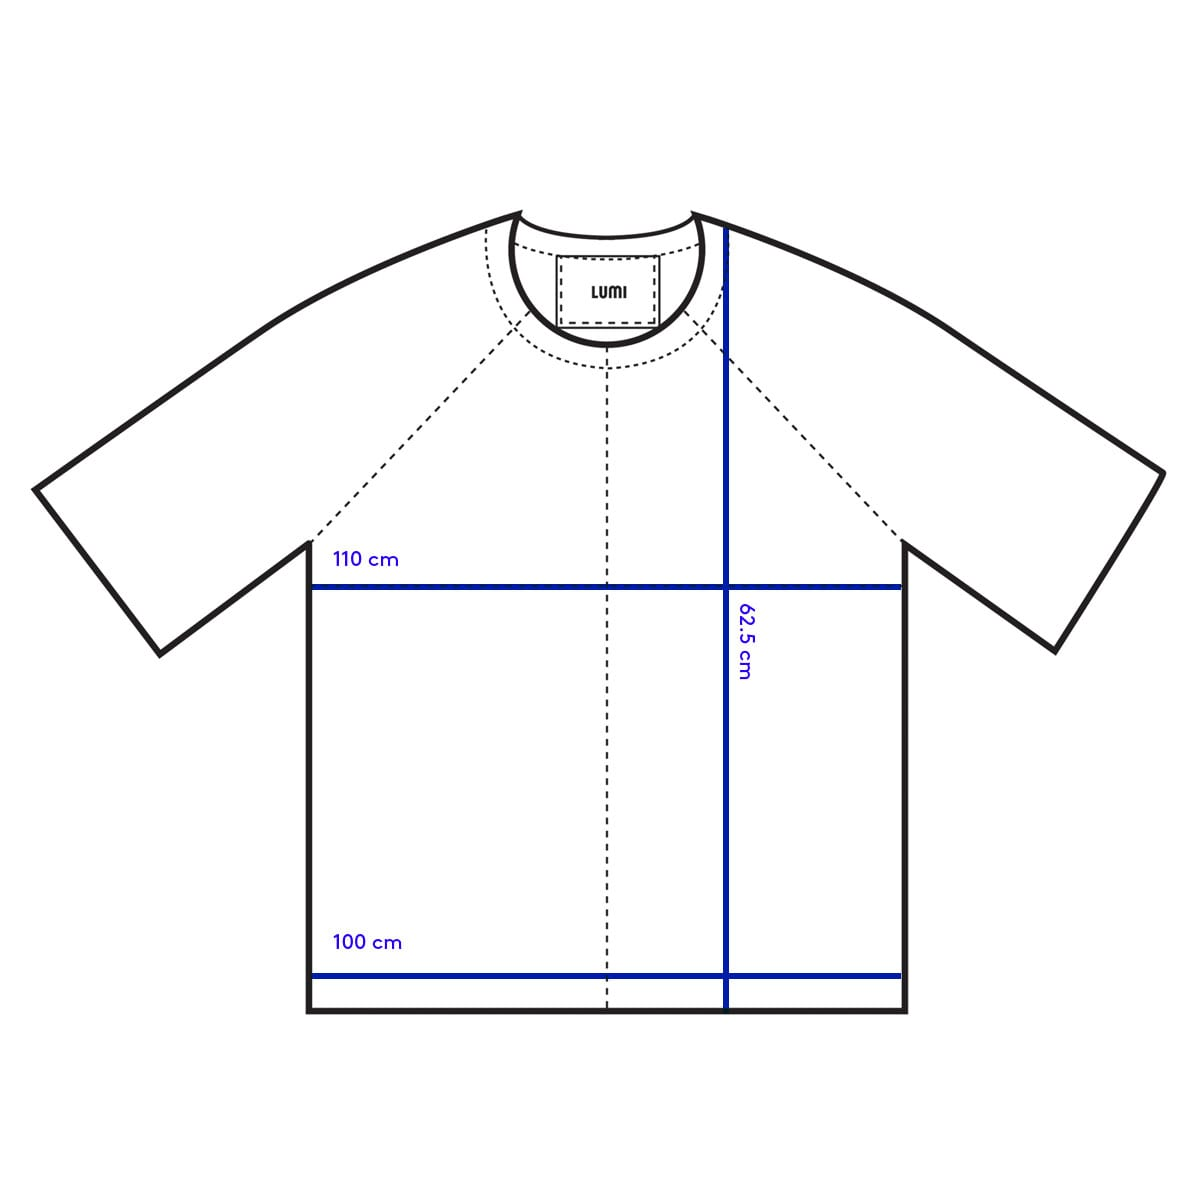 LUMI Leather Garments T-Shirt (medium) measurements